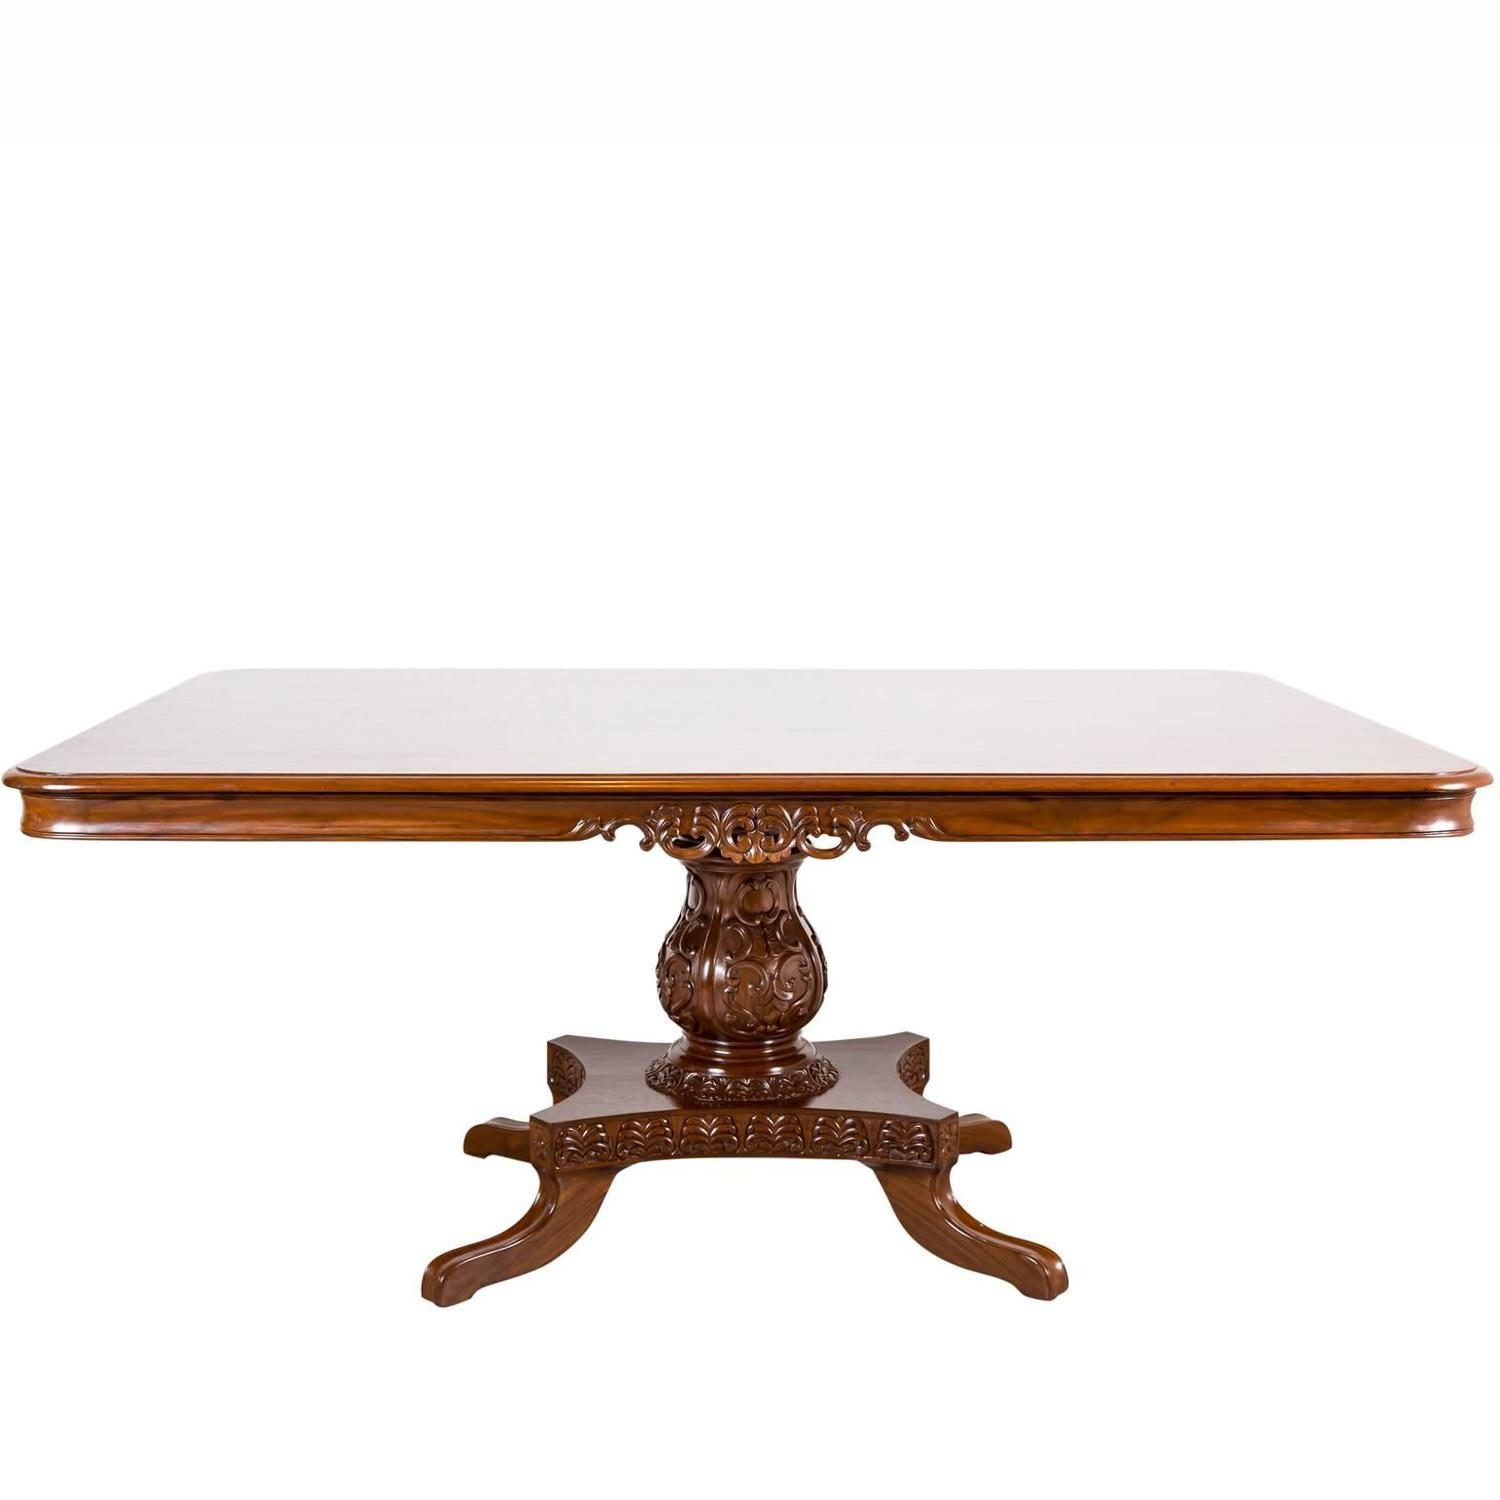 antique anglo indian or british colonial teak wood dining table: extension table f